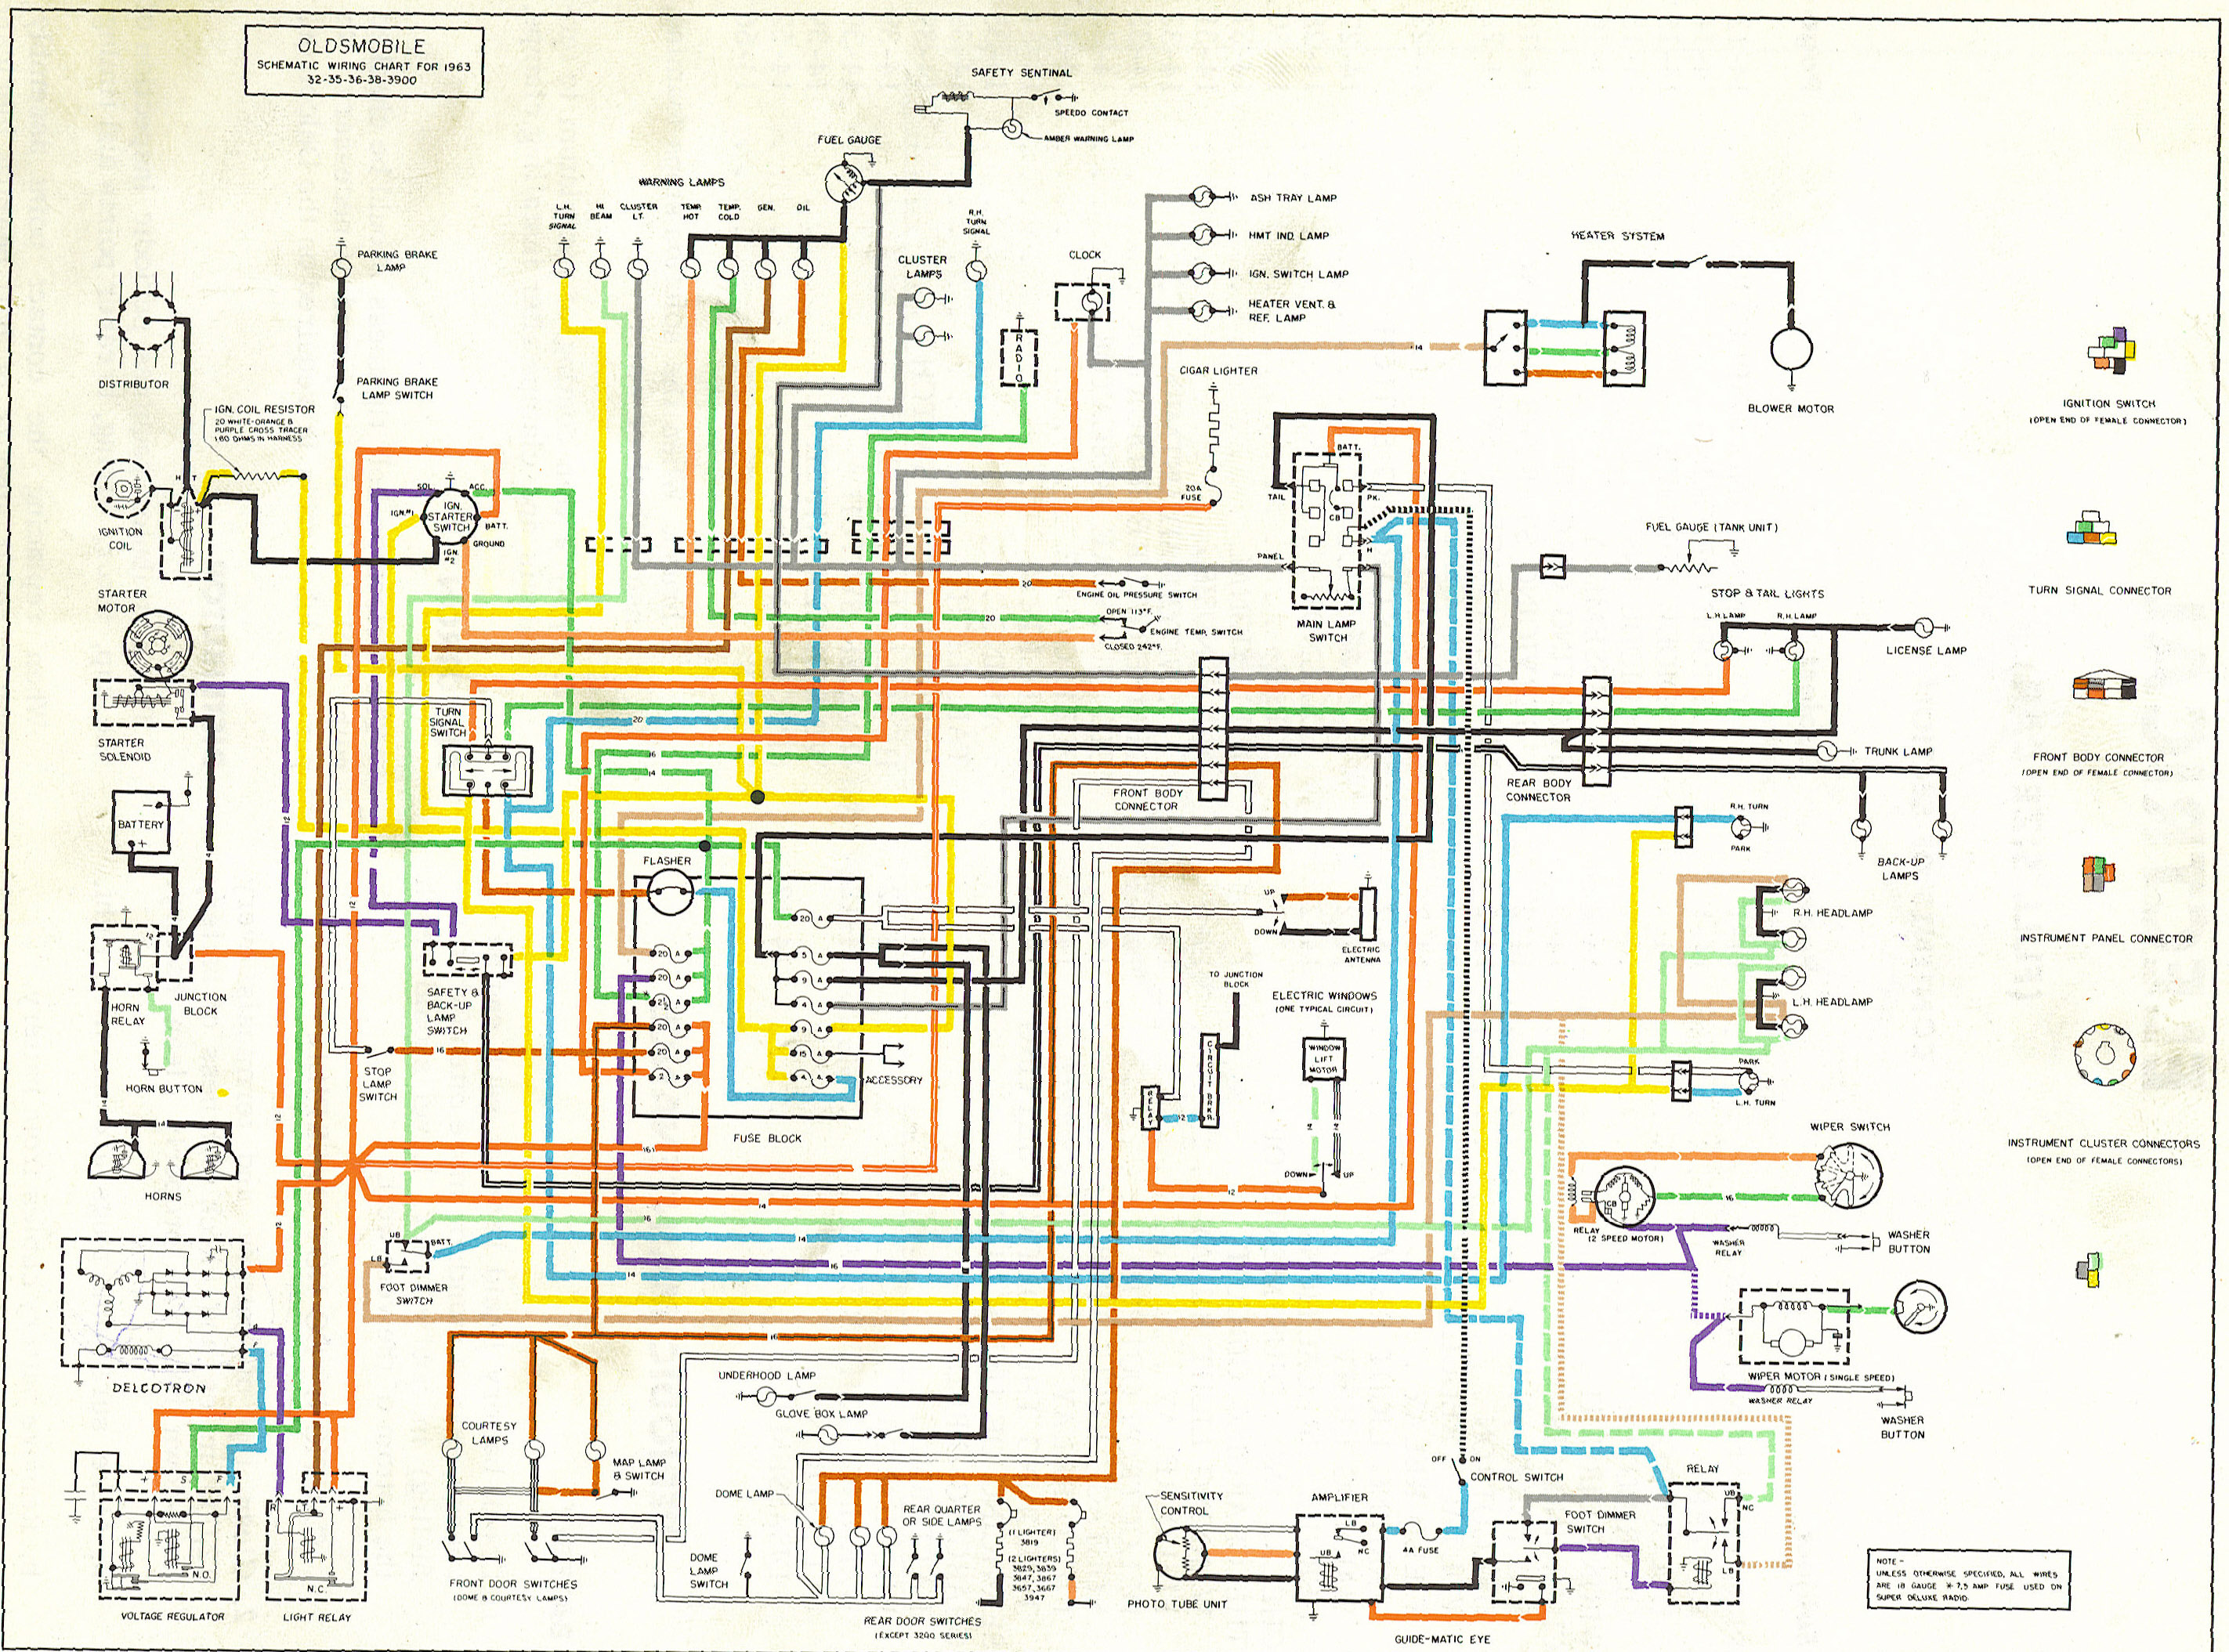 1969 Mustang Horn Wiring Diagram - Just Another Wiring Diagram Blog on stratocaster wiring diagram, soloist wiring diagram, taylor wiring diagram, gibson wiring diagram, electric wiring diagram, 12-string wiring diagram, broadcaster wiring diagram, telecaster template, hamer wiring diagram, telecaster control plate, esquire wiring diagram, cyclone wiring diagram, fender wiring diagram, harmony wiring diagram, guitar wiring diagram, dimarzio wiring diagram, humbucker wiring diagram, telecaster four way switch, les paul wiring diagram, mosrite wiring diagram,